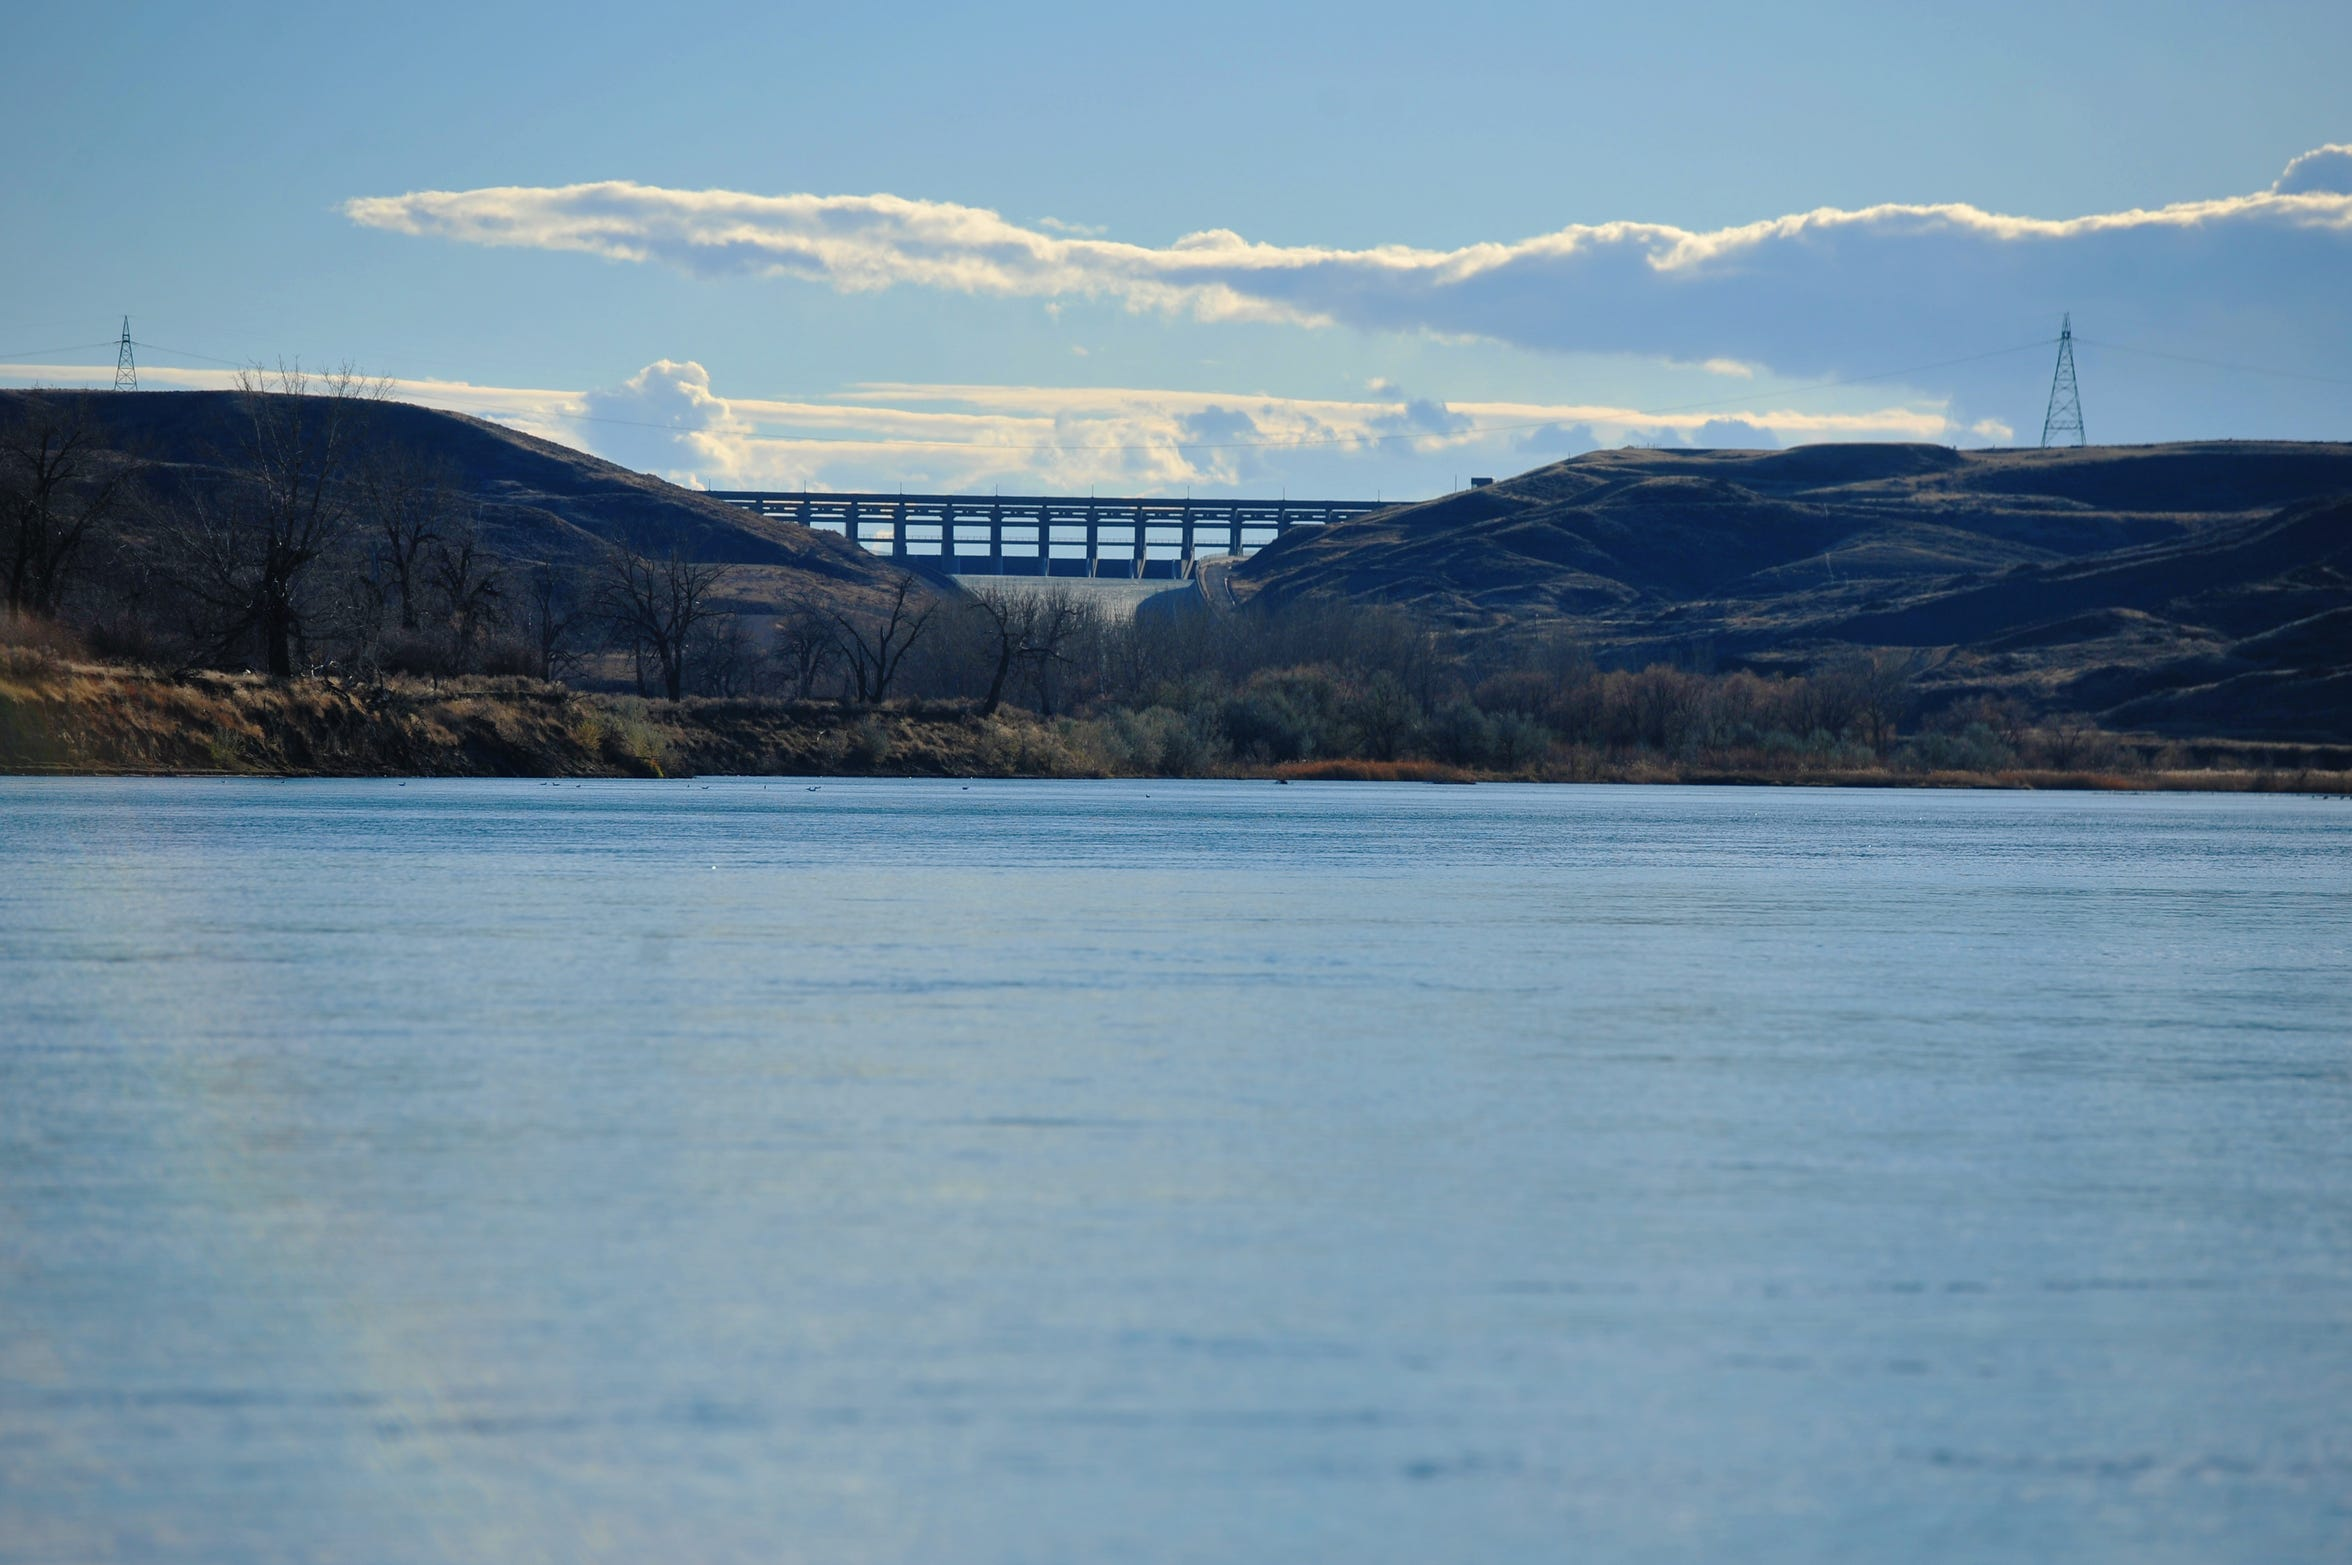 The Keystone XL Pipeline will cross the Missouri River downstream of the Fort Peck Dam spillway near the confluence of the Missouri and Milk rivers in Vallley County, Mont.  This photo was taken from the north shore of the Missouri River on property owned by the Page family, who has granted an easement for the project.